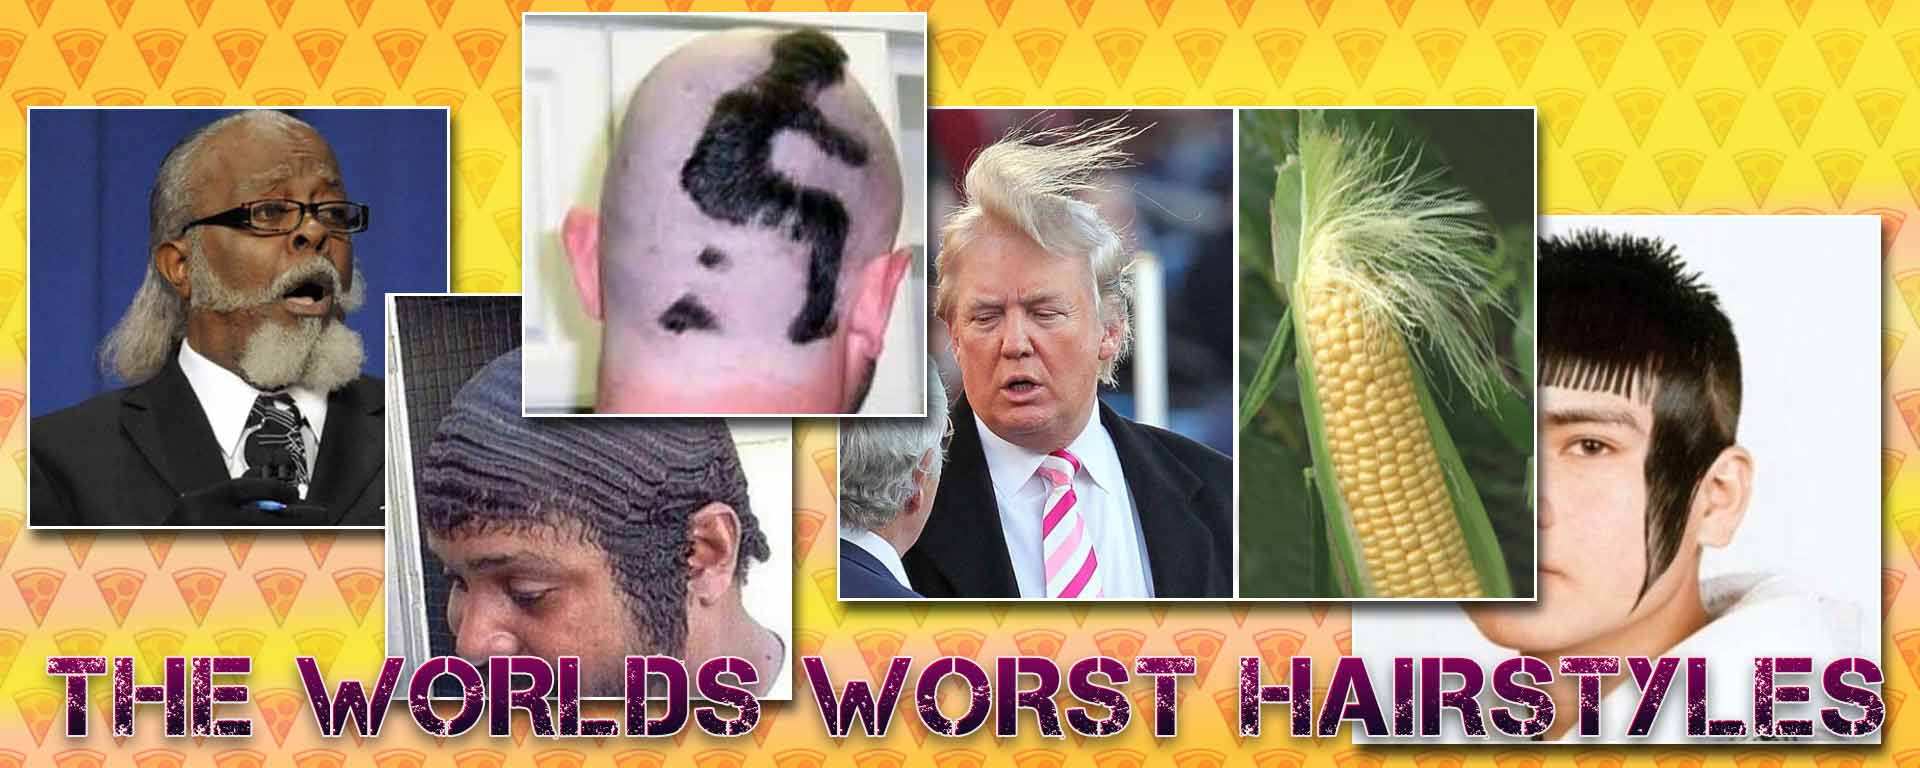 Feadured worlds worst hairstyles